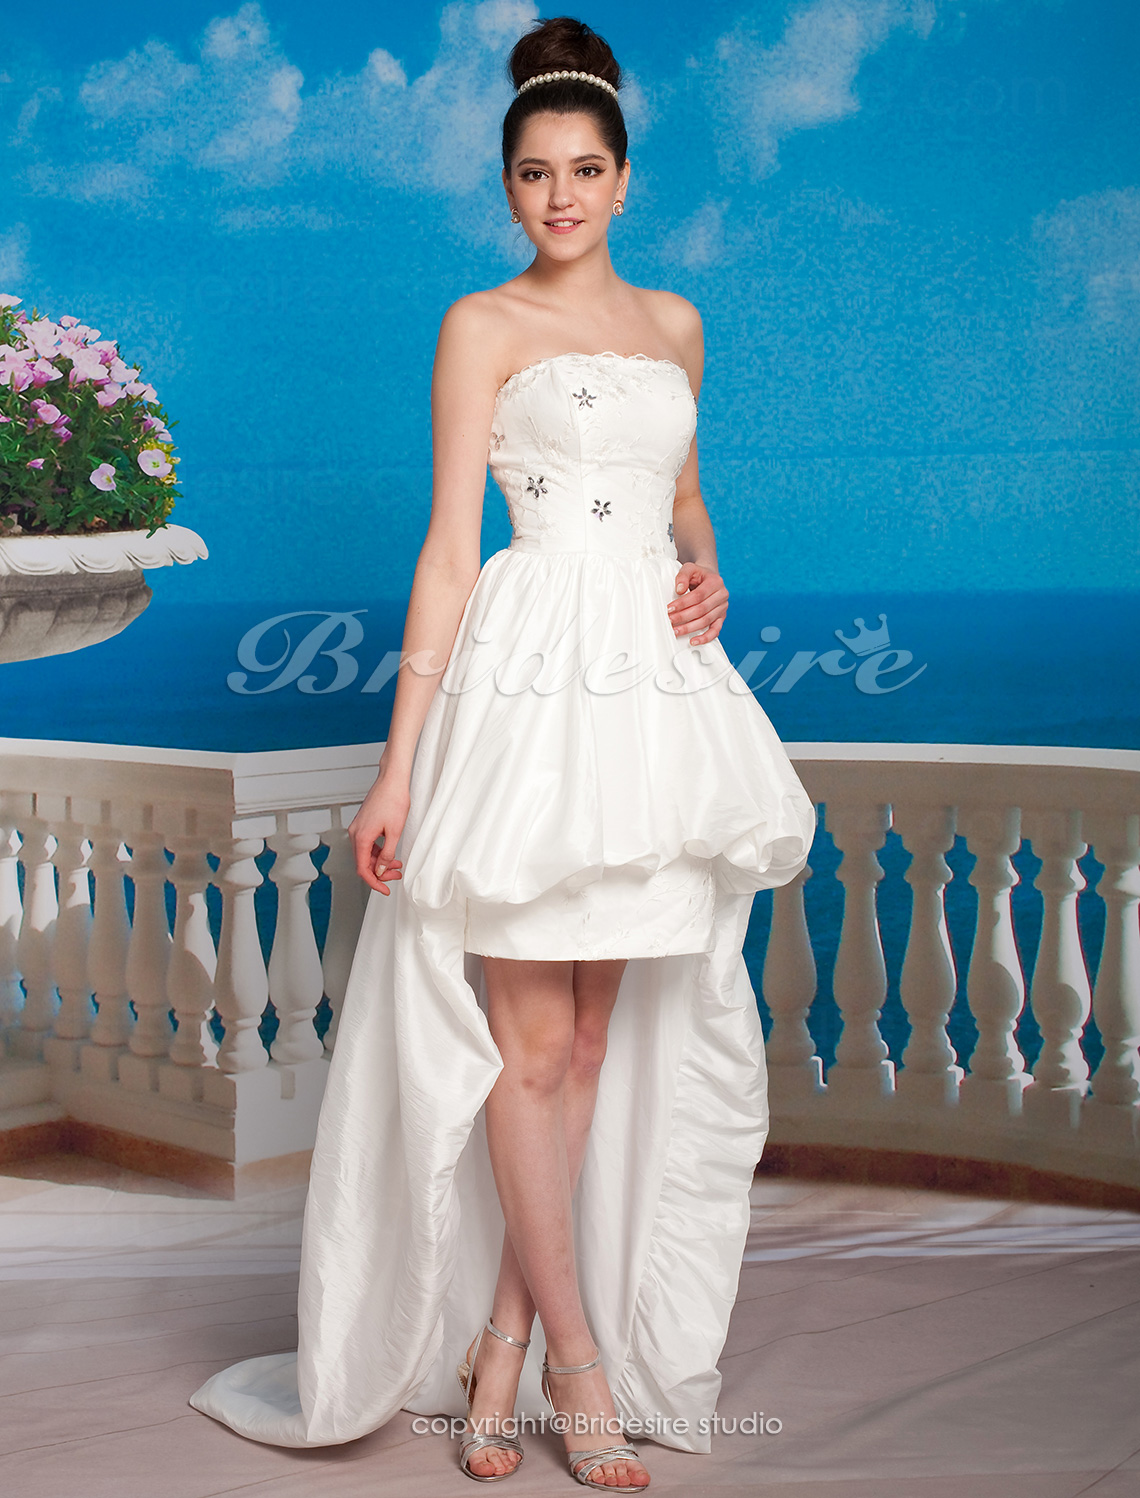 A-line Satin Asymmetrical Strapless Wedding Dress